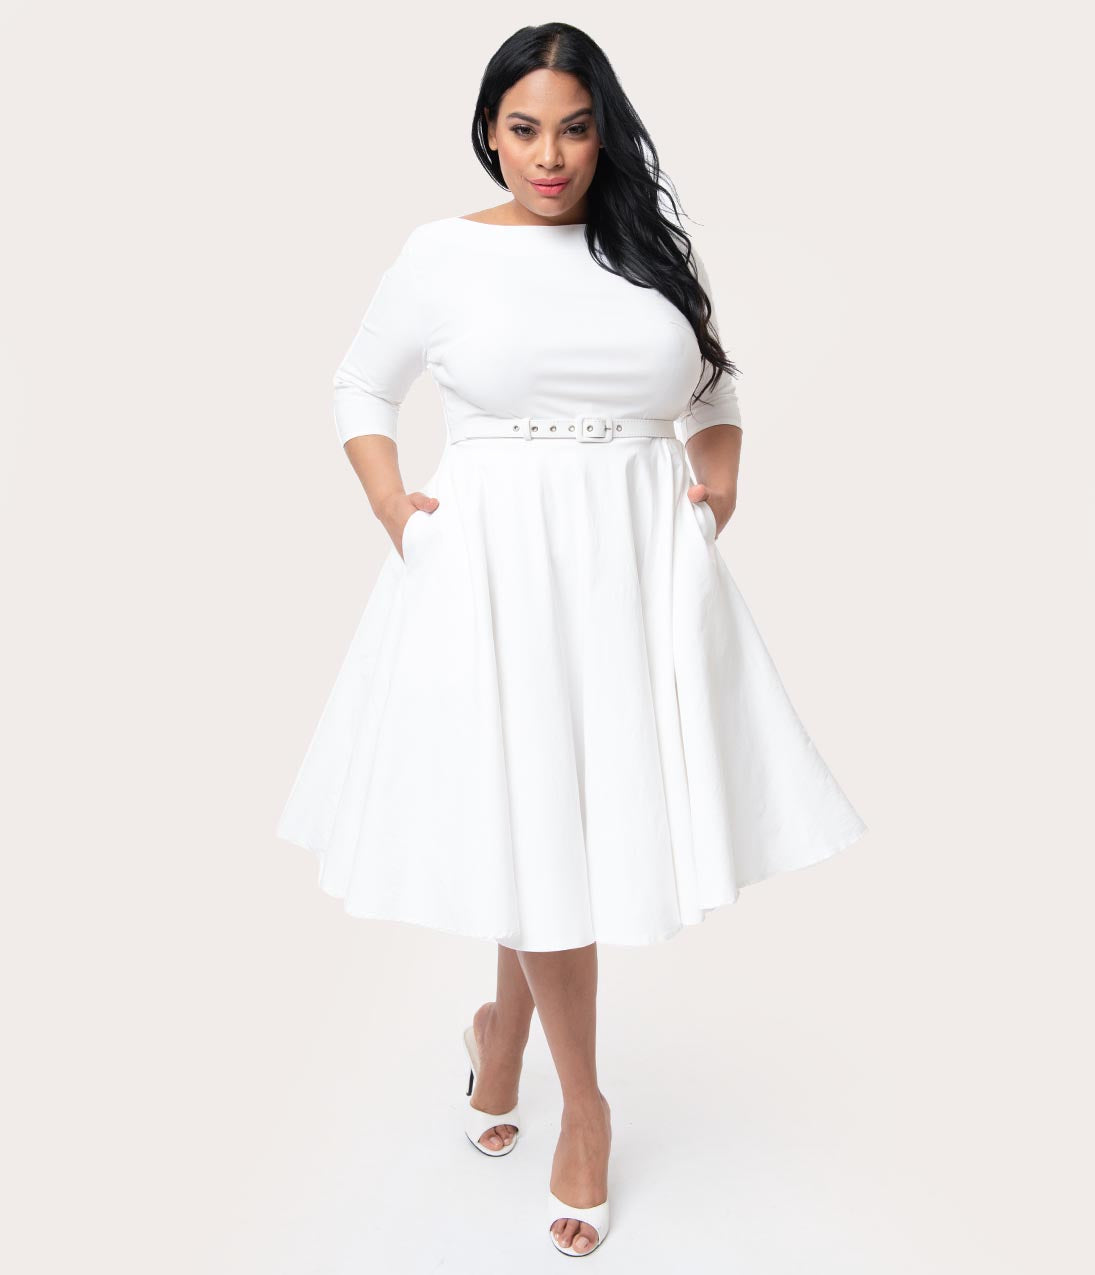 Vintage 50s Dresses: Best 1950s Dress Styles Unique Vintage Plus Size 1950S Style Ivory Stretch Sleeved Devon Swing Dress $88.00 AT vintagedancer.com